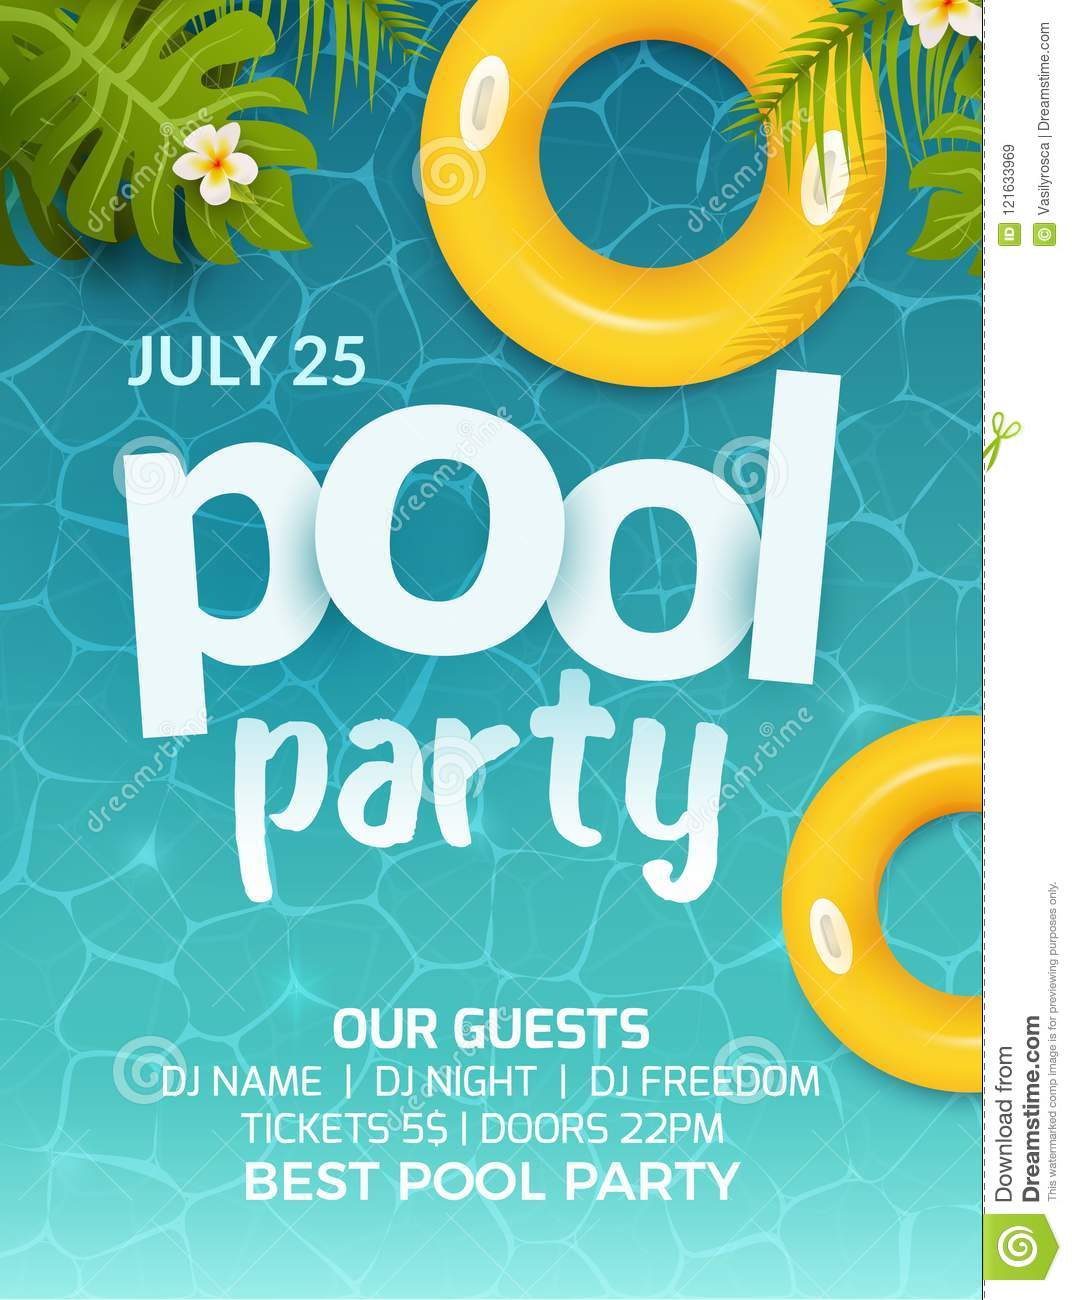 Pool summer party invitation banner flyer design water and palm pool summer party invitation banner flyer design water and palm inflatable yellow mattress pool party template poster maxwellsz